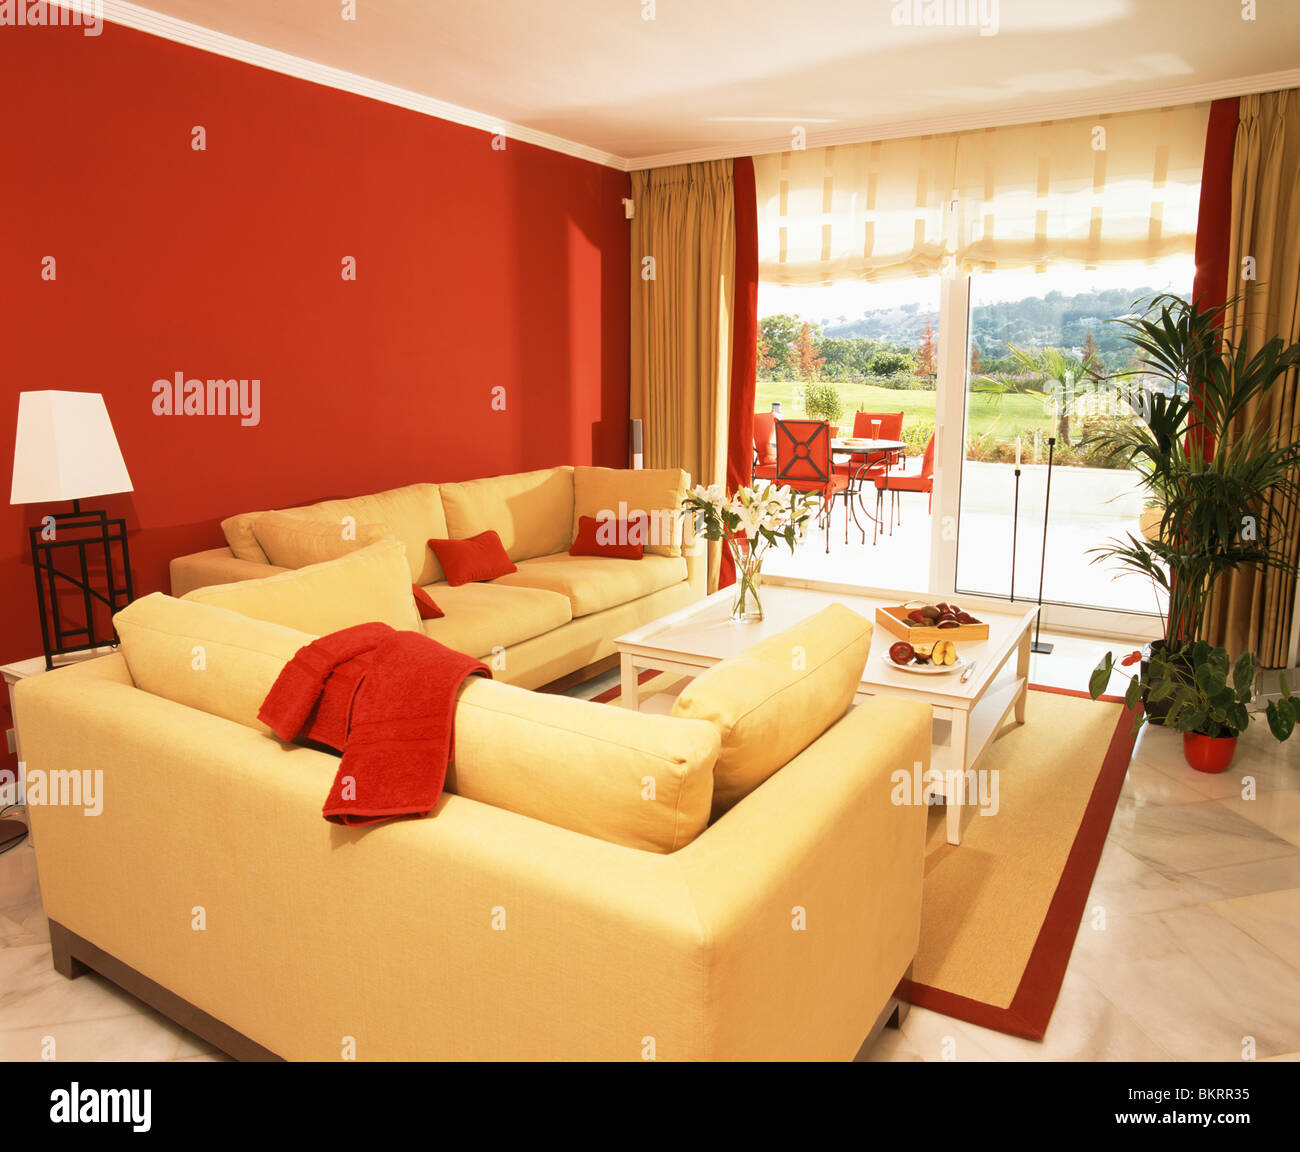 Bright Yellow Sofas And Red Wall In Modern Living Room